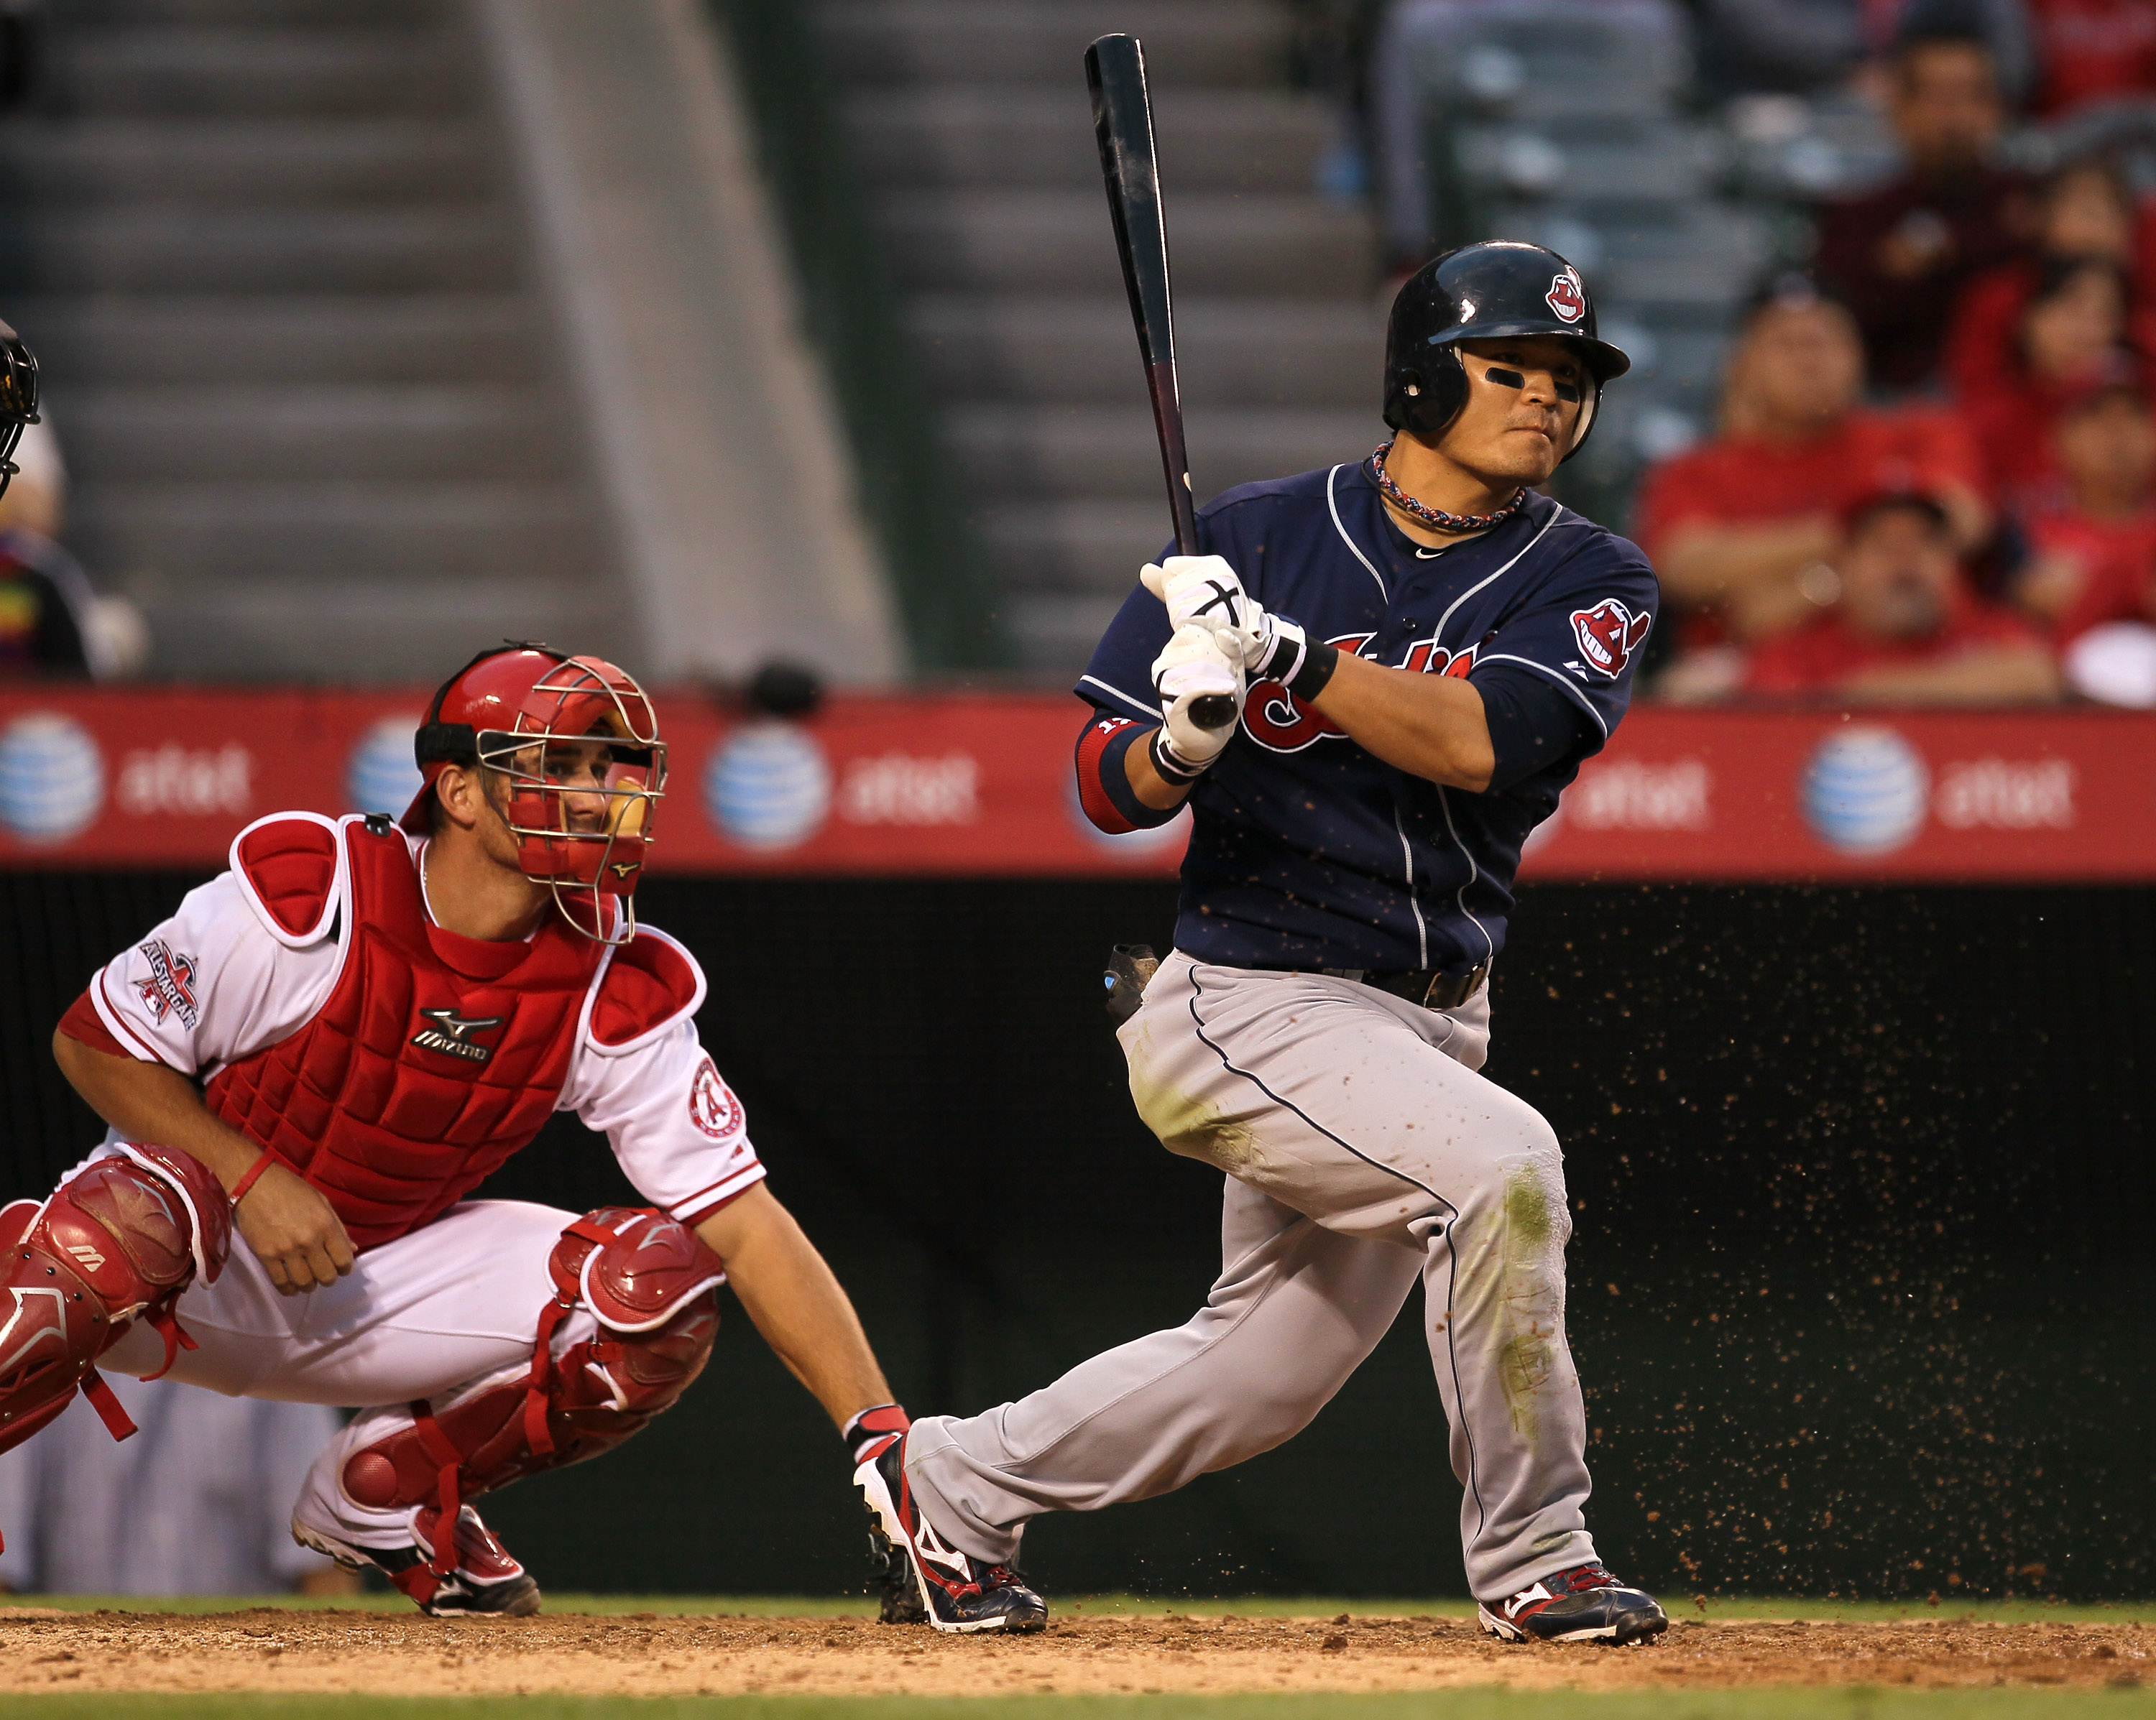 ANAHEIM, CA - SEPTEMBER 08:  Shin-Soo Choo #17 of the Cleveland Indian bats against the Los Angeles Angels of Anaheim on September 8, 2010 at Angel Stadium in Anaheim, California.   The Angels won 4-3 in 16 innings.  (Photo by Stephen Dunn/Getty Images)